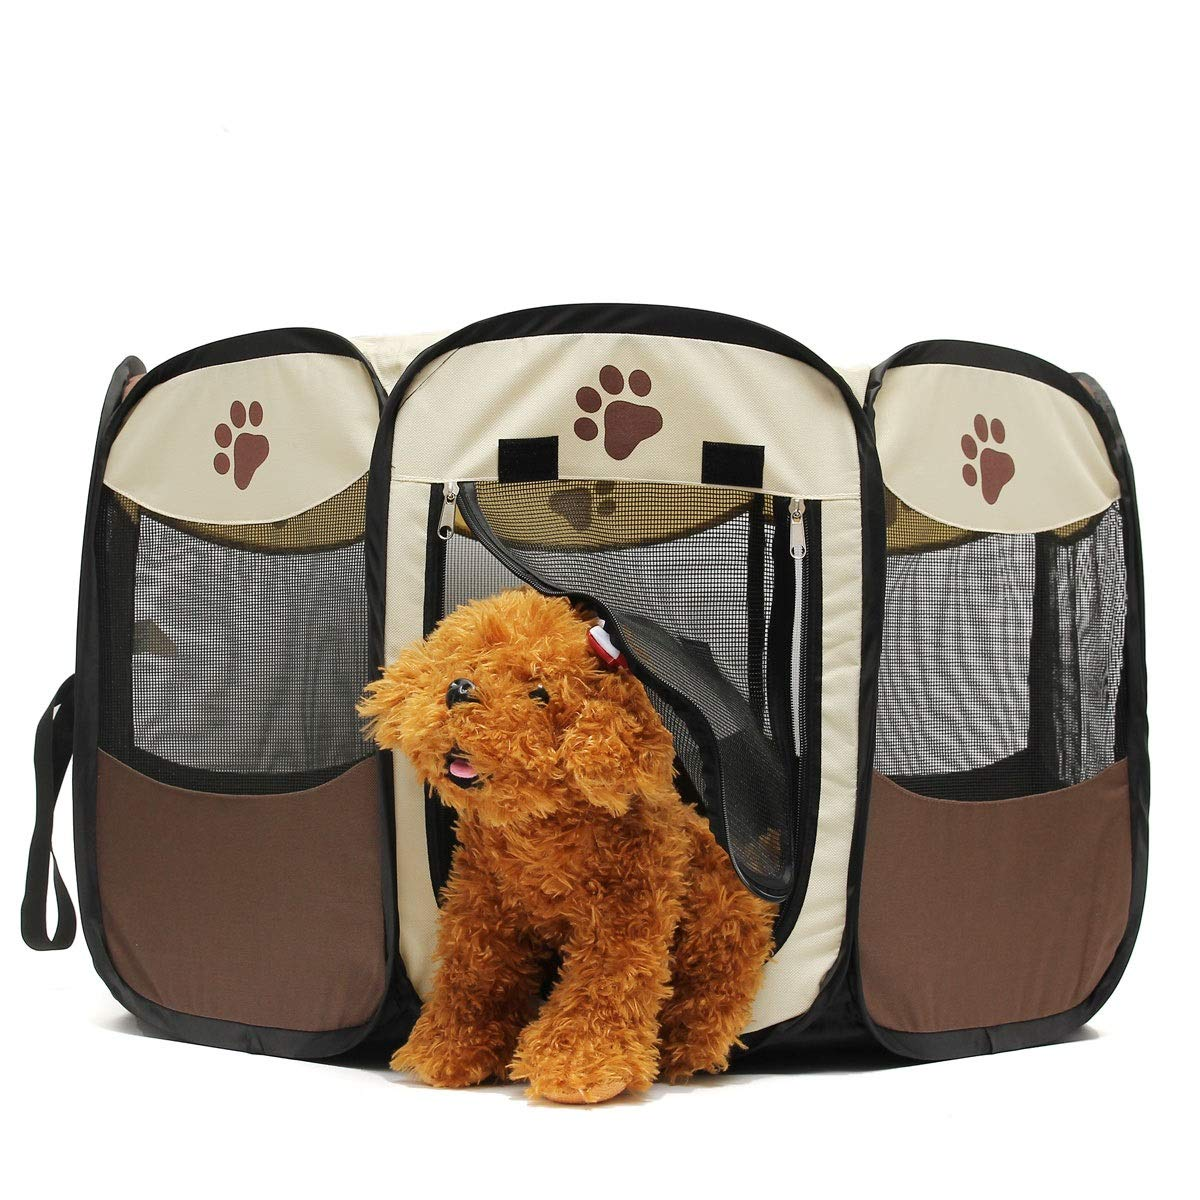 Fishagelo 45cm Pet Dog Cat Playpen Tent Portable Exercise Fence Kennel Cage Crate Fishagelo